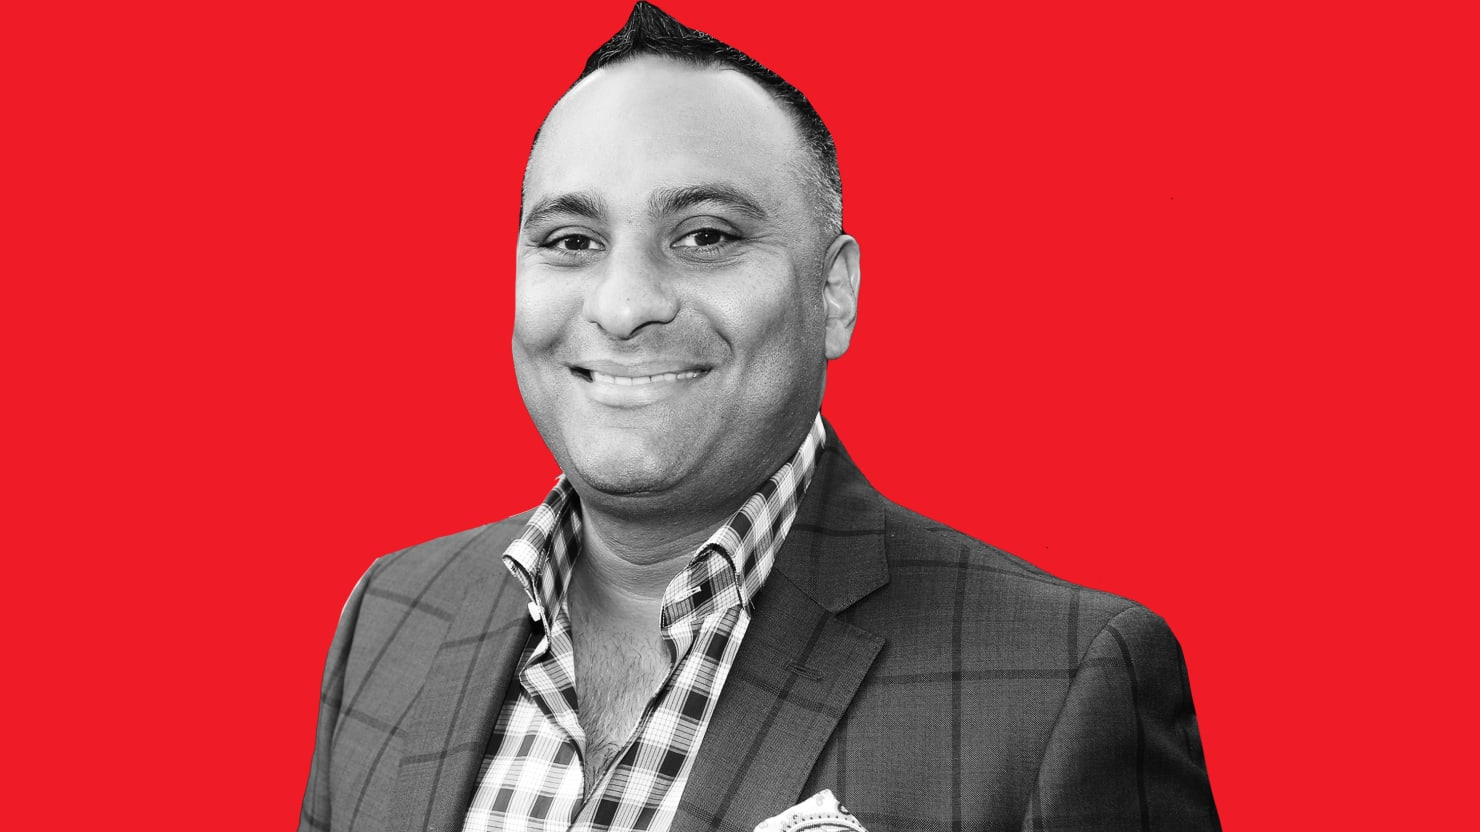 Russell Peters Defends Comedic Stereotypes: Nothing 'Hacky' About Indian Accent